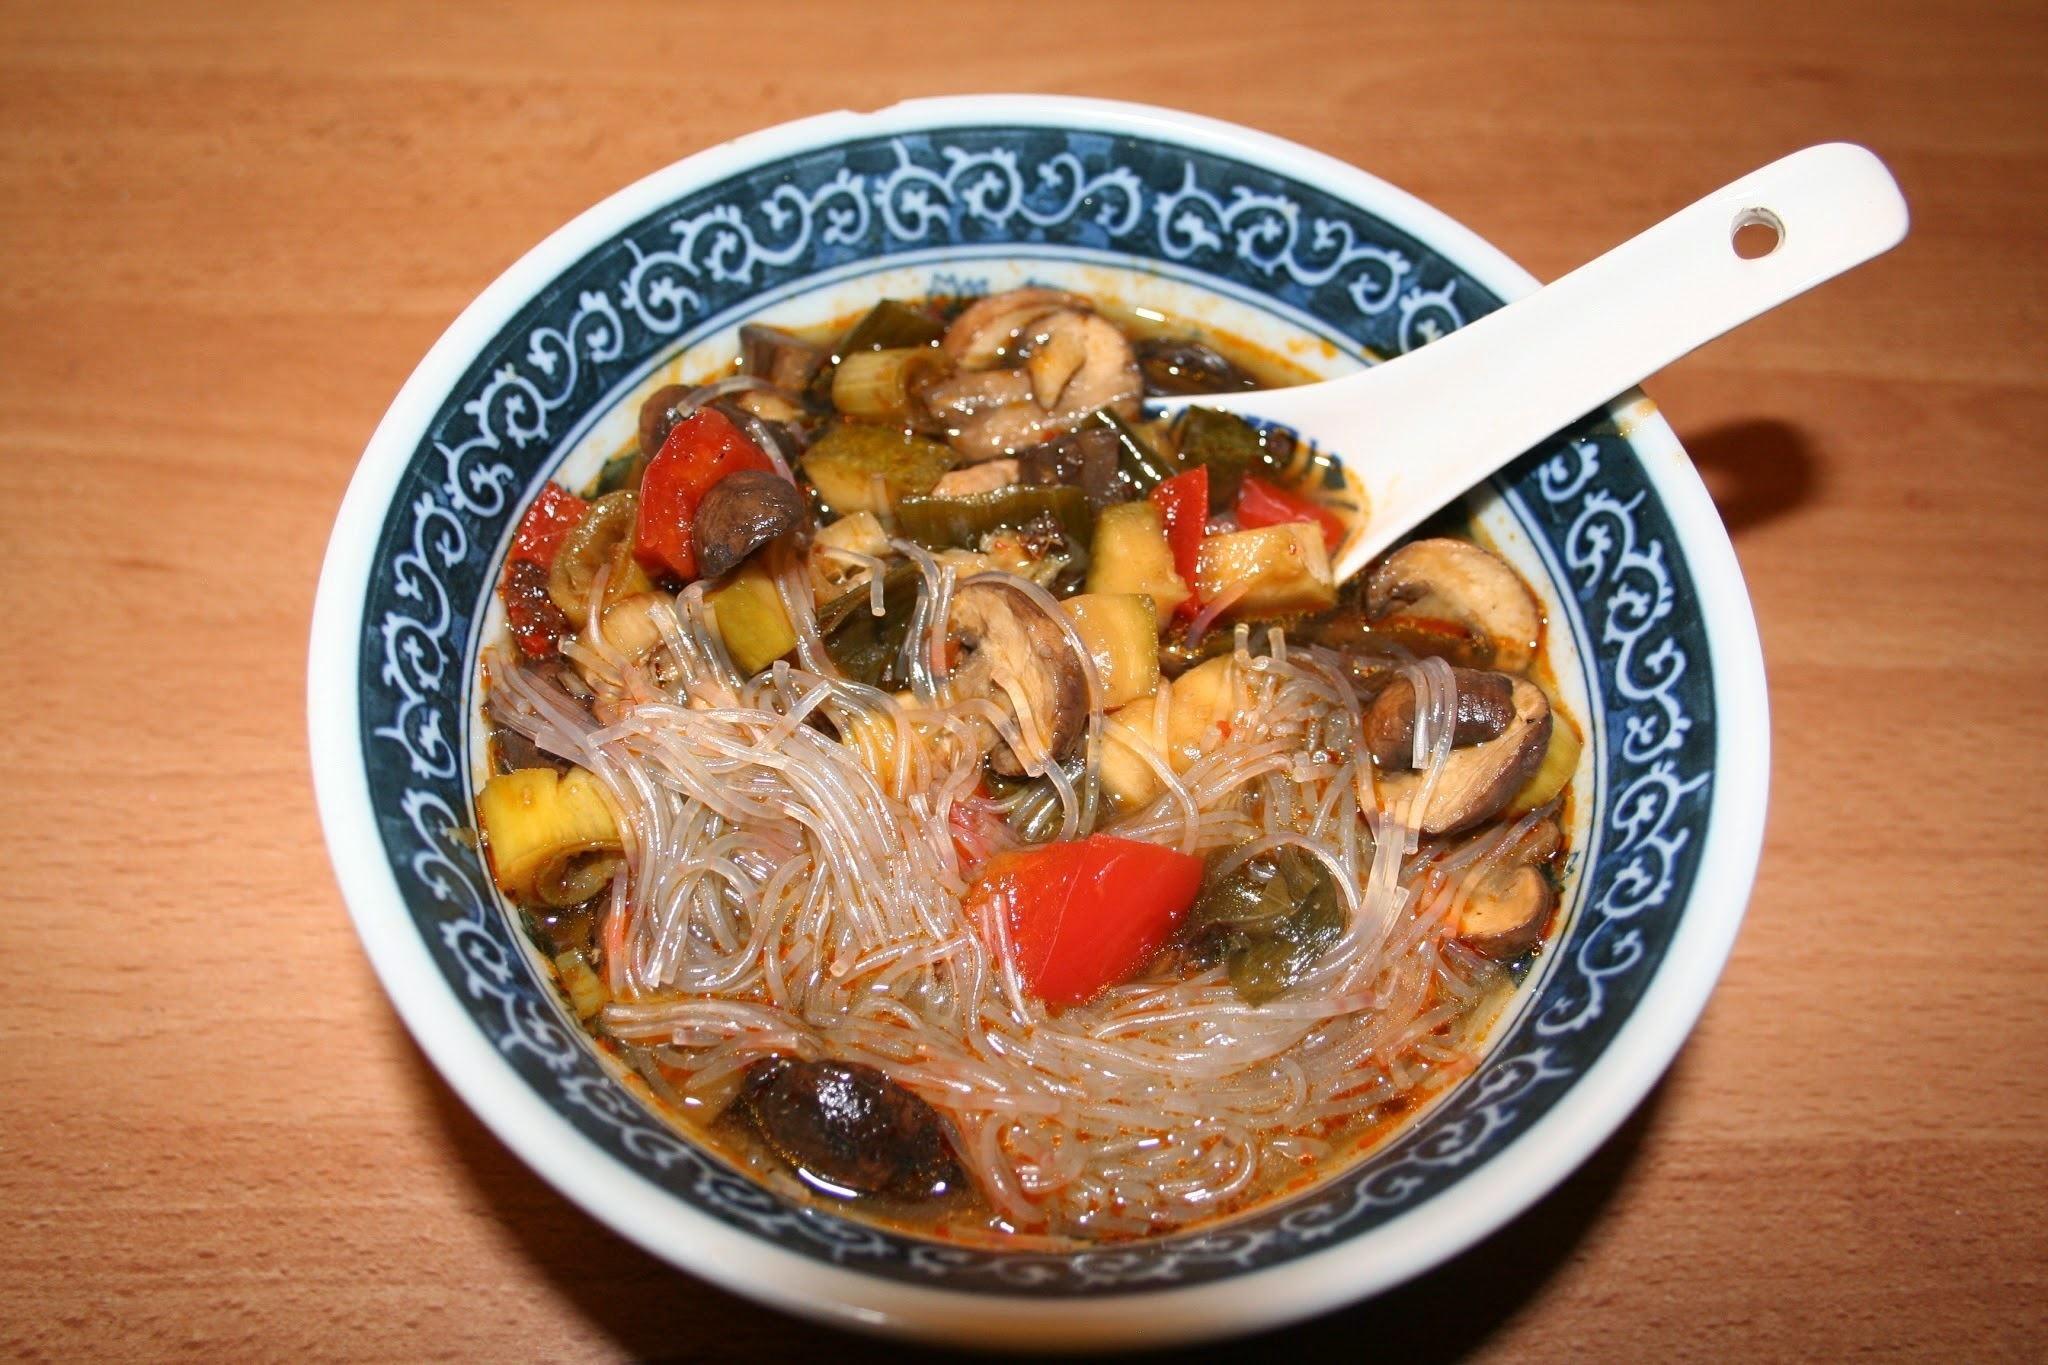 Bihun Suppe